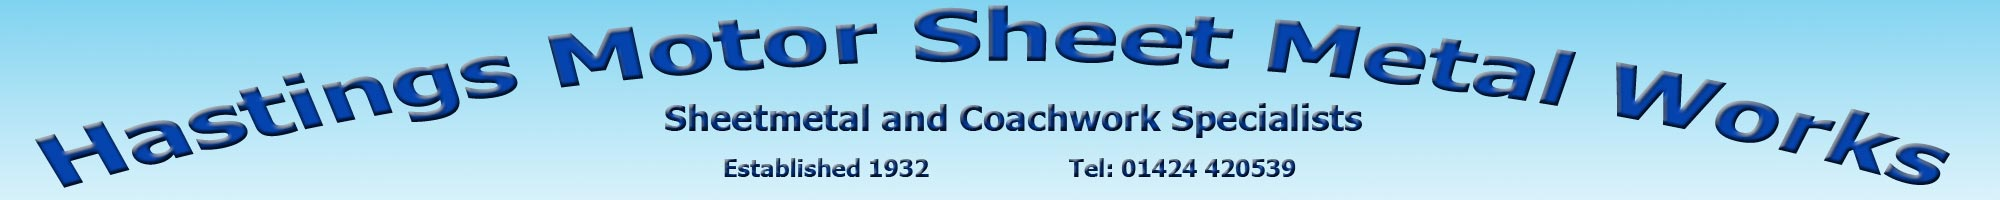 Hastings Motor Sheet Metal Works.  Sheetmetal and Coachwork Specialists established 1932.  Telephone 01424420539